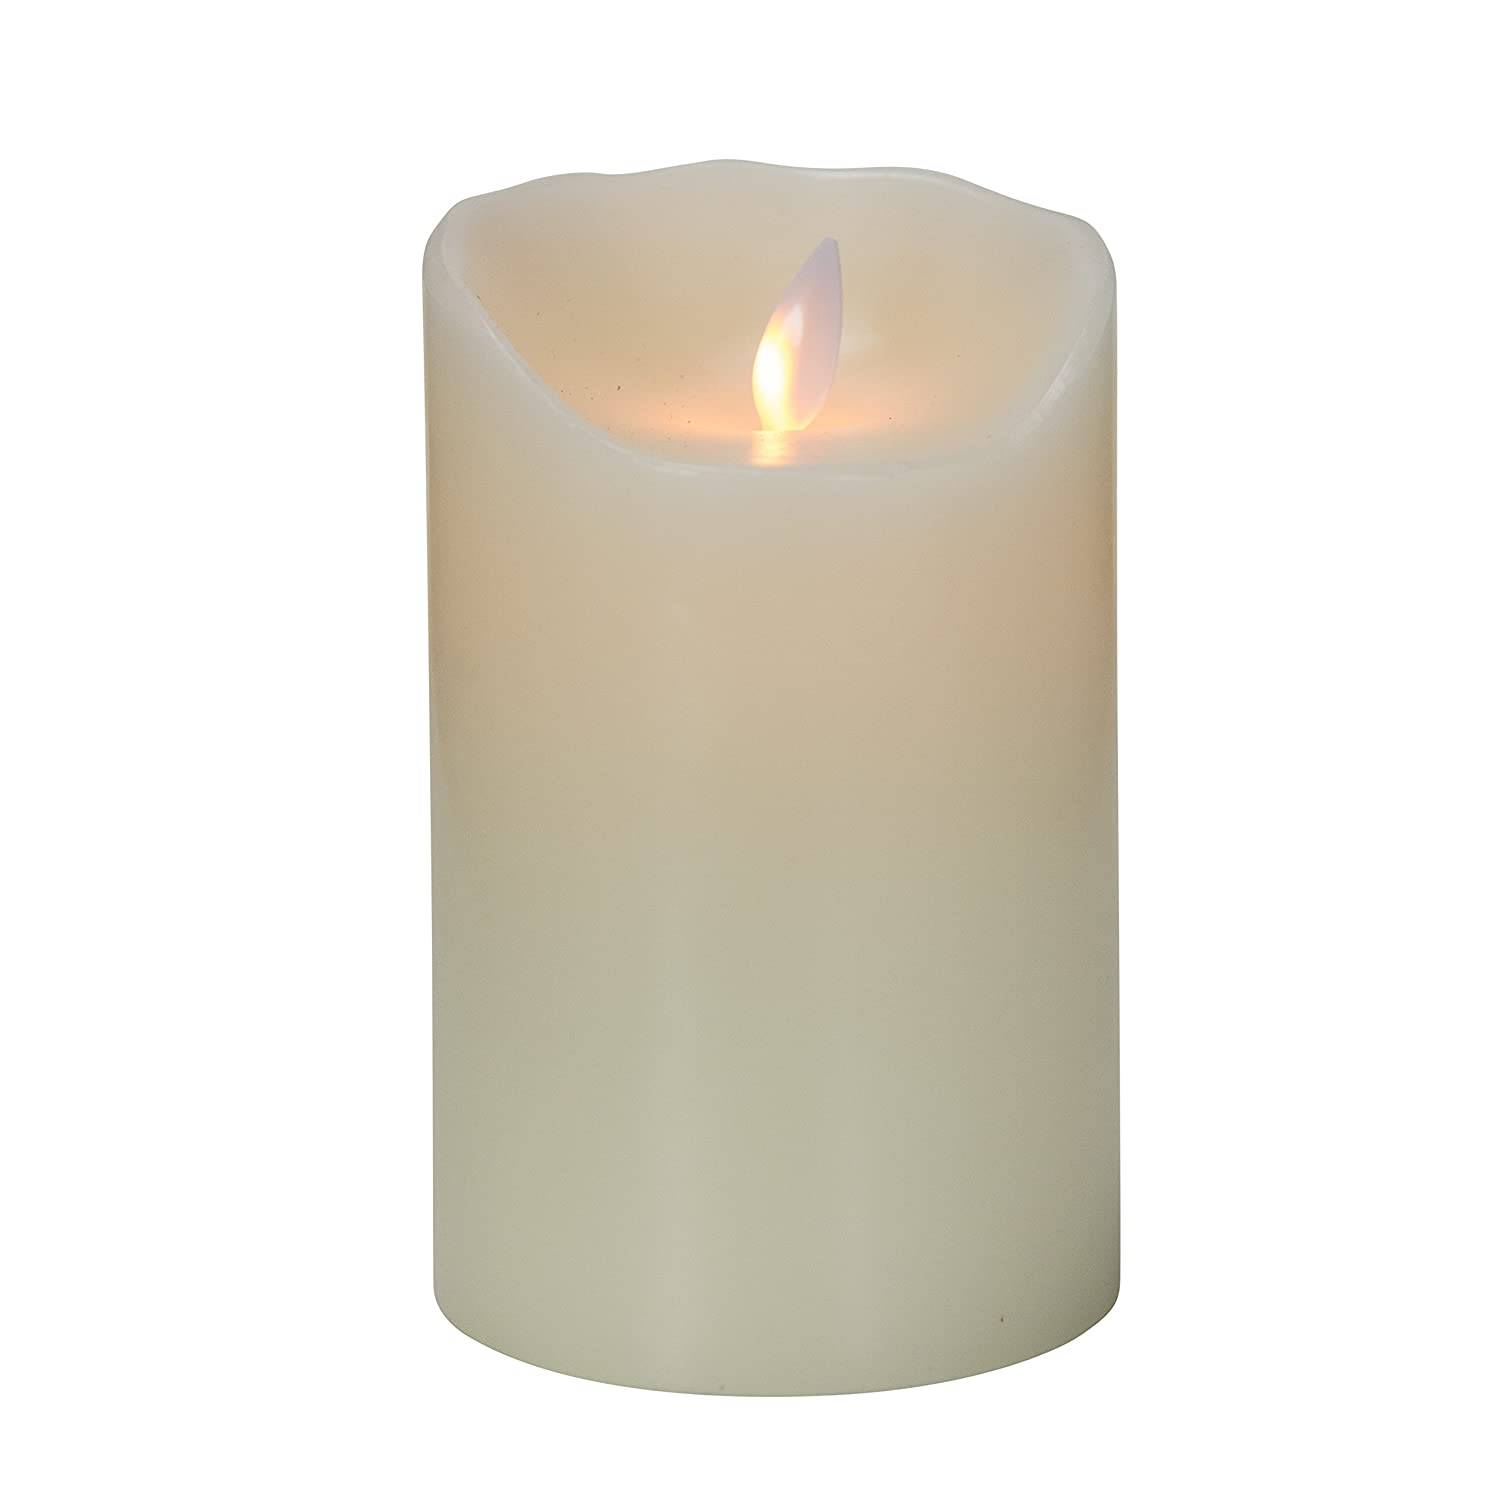 Real Wax Candle With Realistic Flickering Wick Ivory 7 Pillar Mystique Flameless Candle Remote Control Ready Battery Operated By Boston Warehouse Ivory 7 Pillar 63569